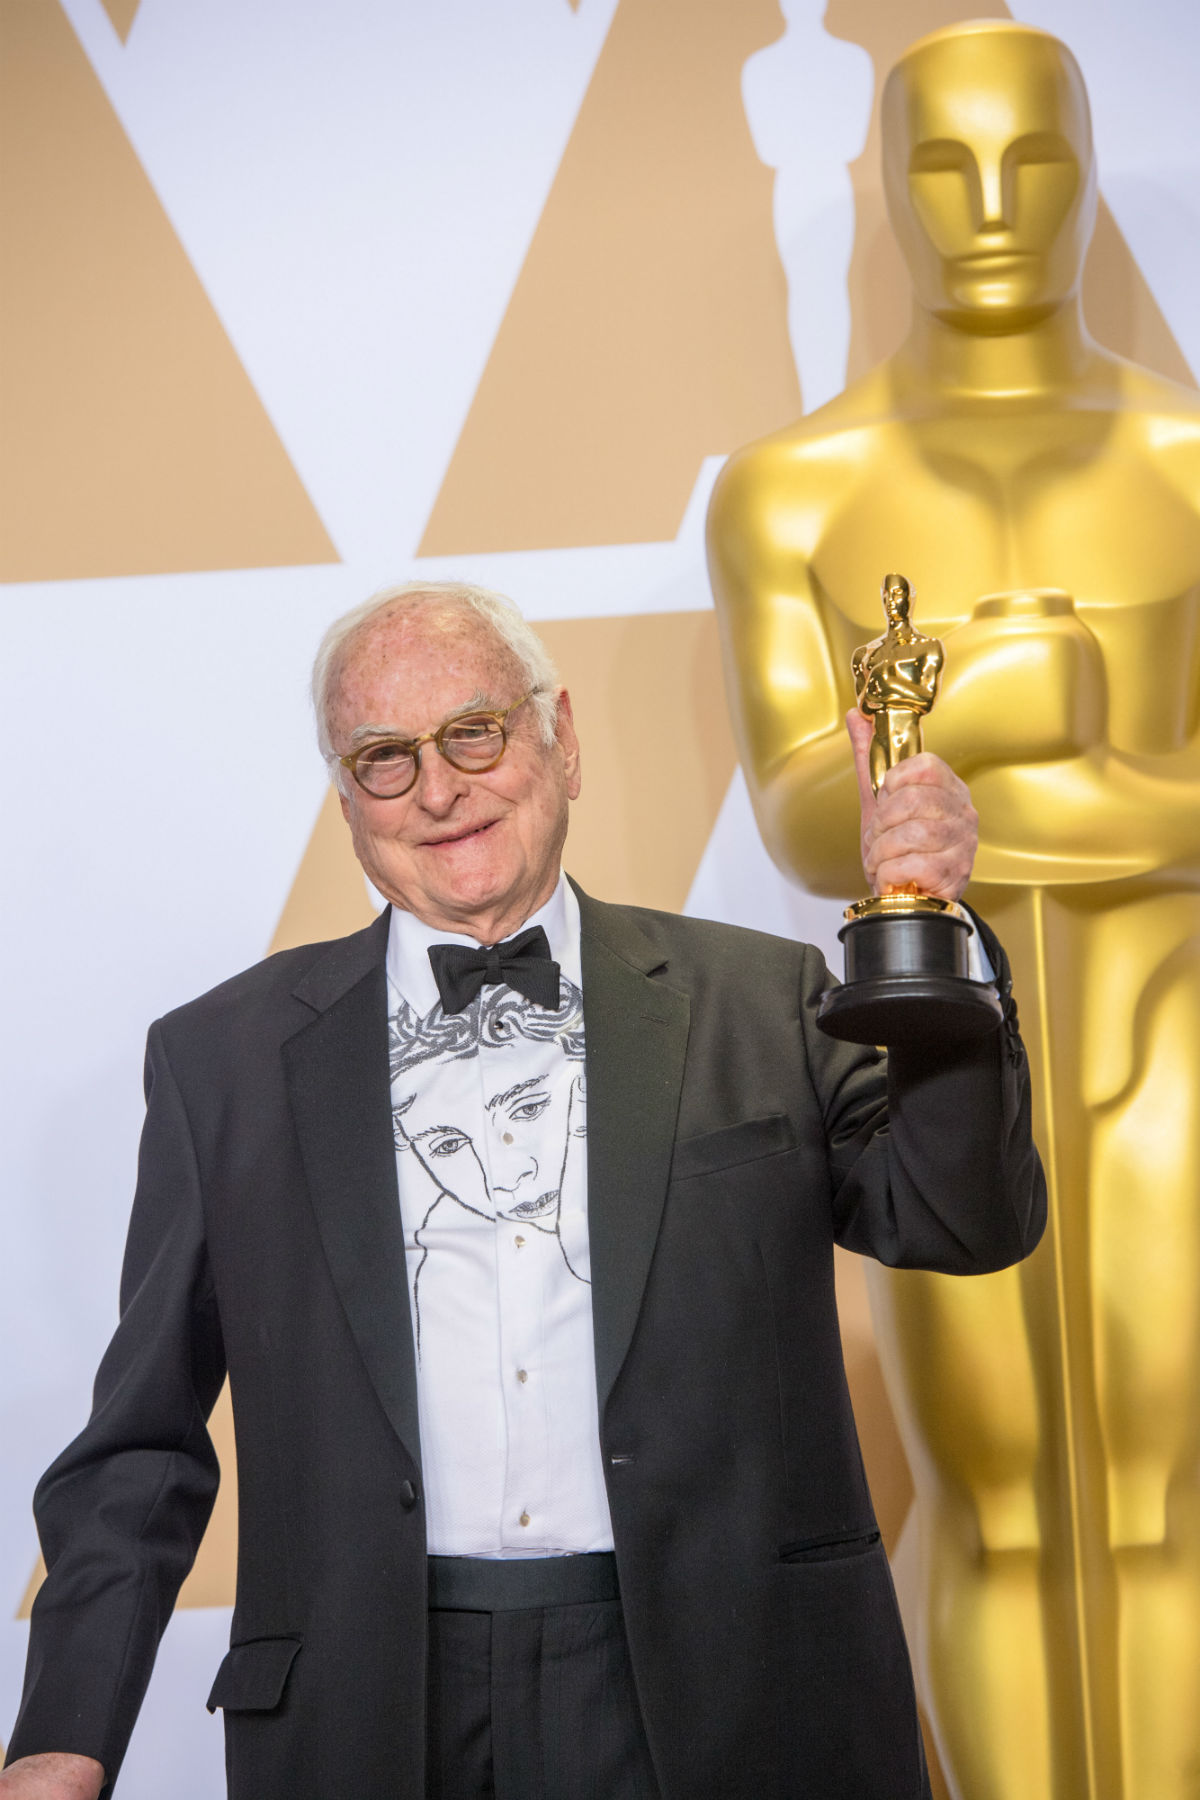 James Ivory. Credit: Michael Baker / A.M.P.A.S.